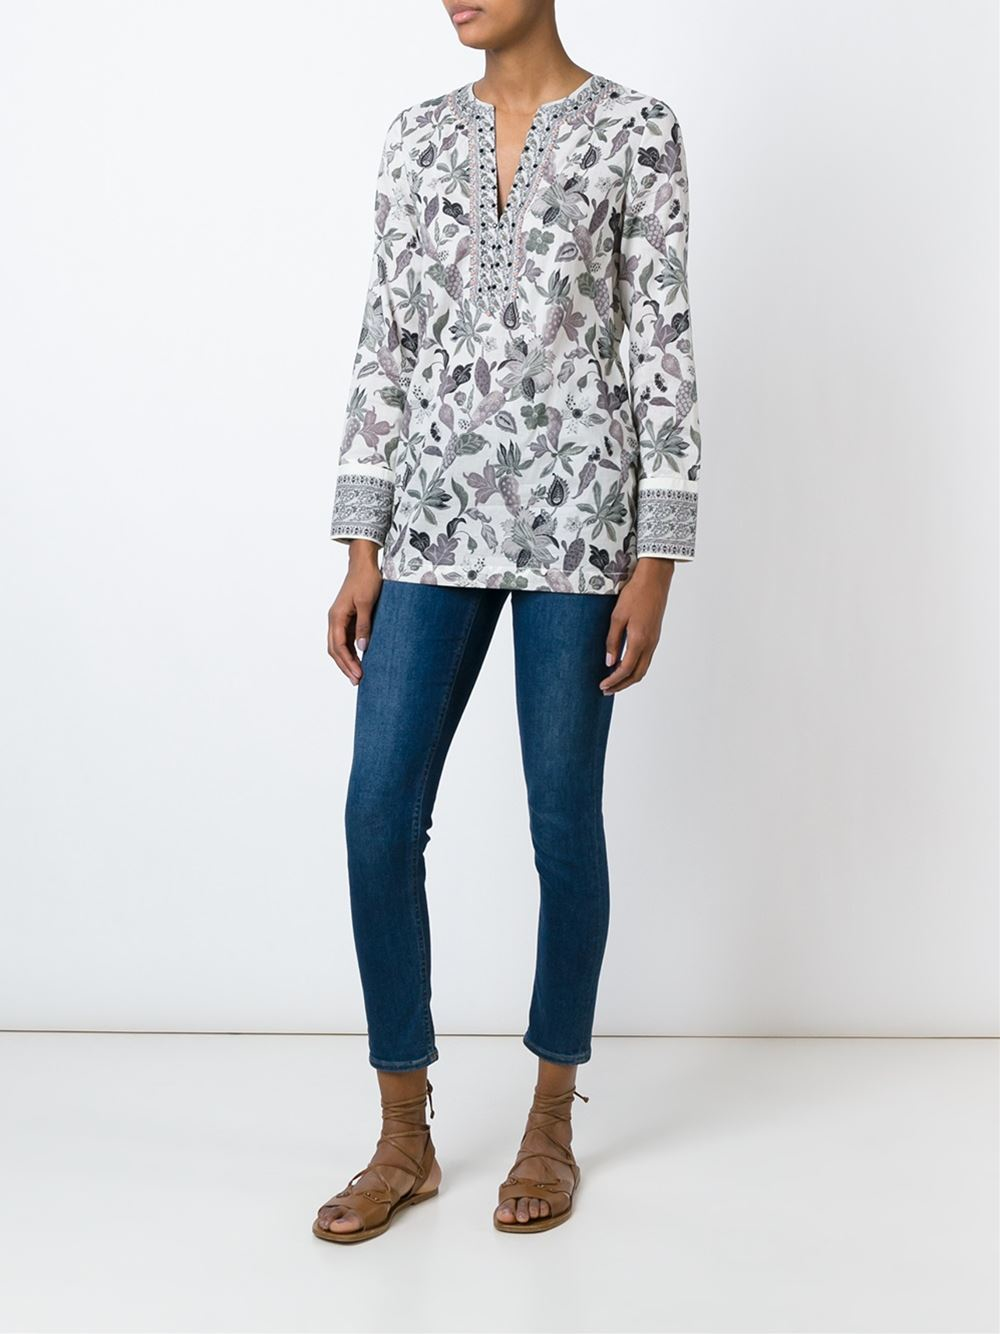 Tory burch floral print blouse lyst for Tory burch fashion island